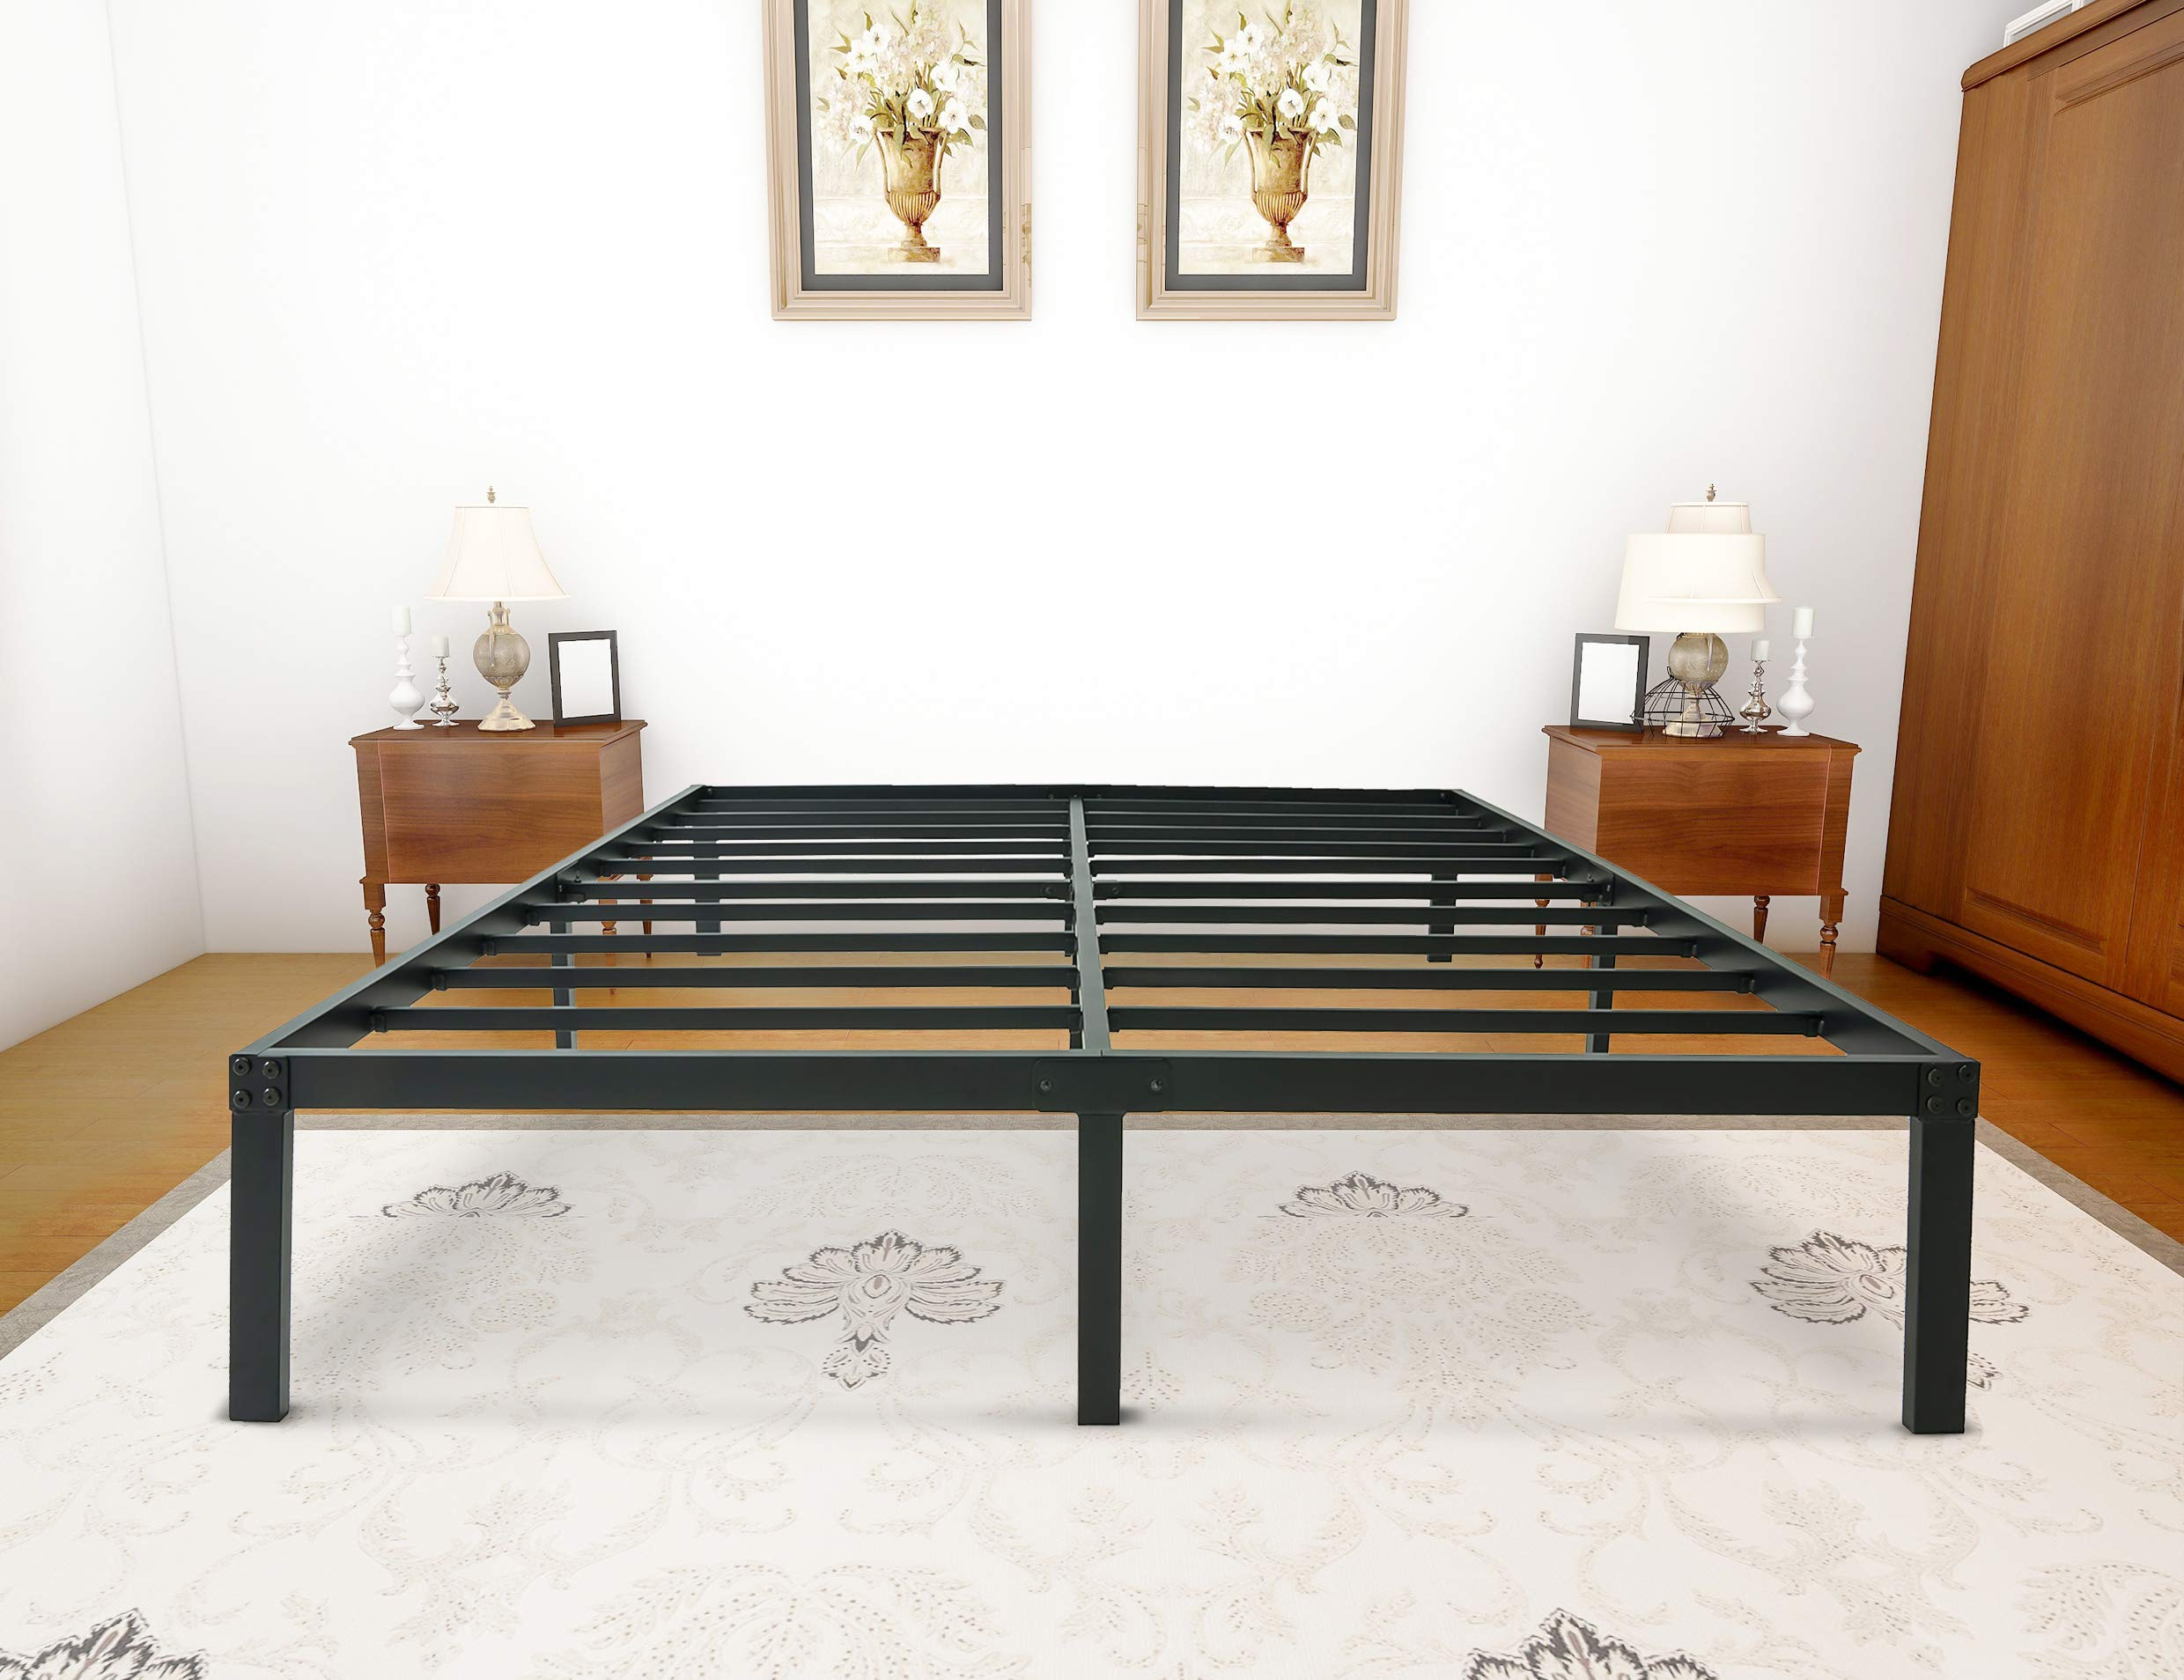 zizin Queen Size Bed Frame Platform Base 14 Inch/Heavy Duty Metal Beds Frames/Easy Assembly/Noise-Free/No Box Spring Needed (Queen) by zizin